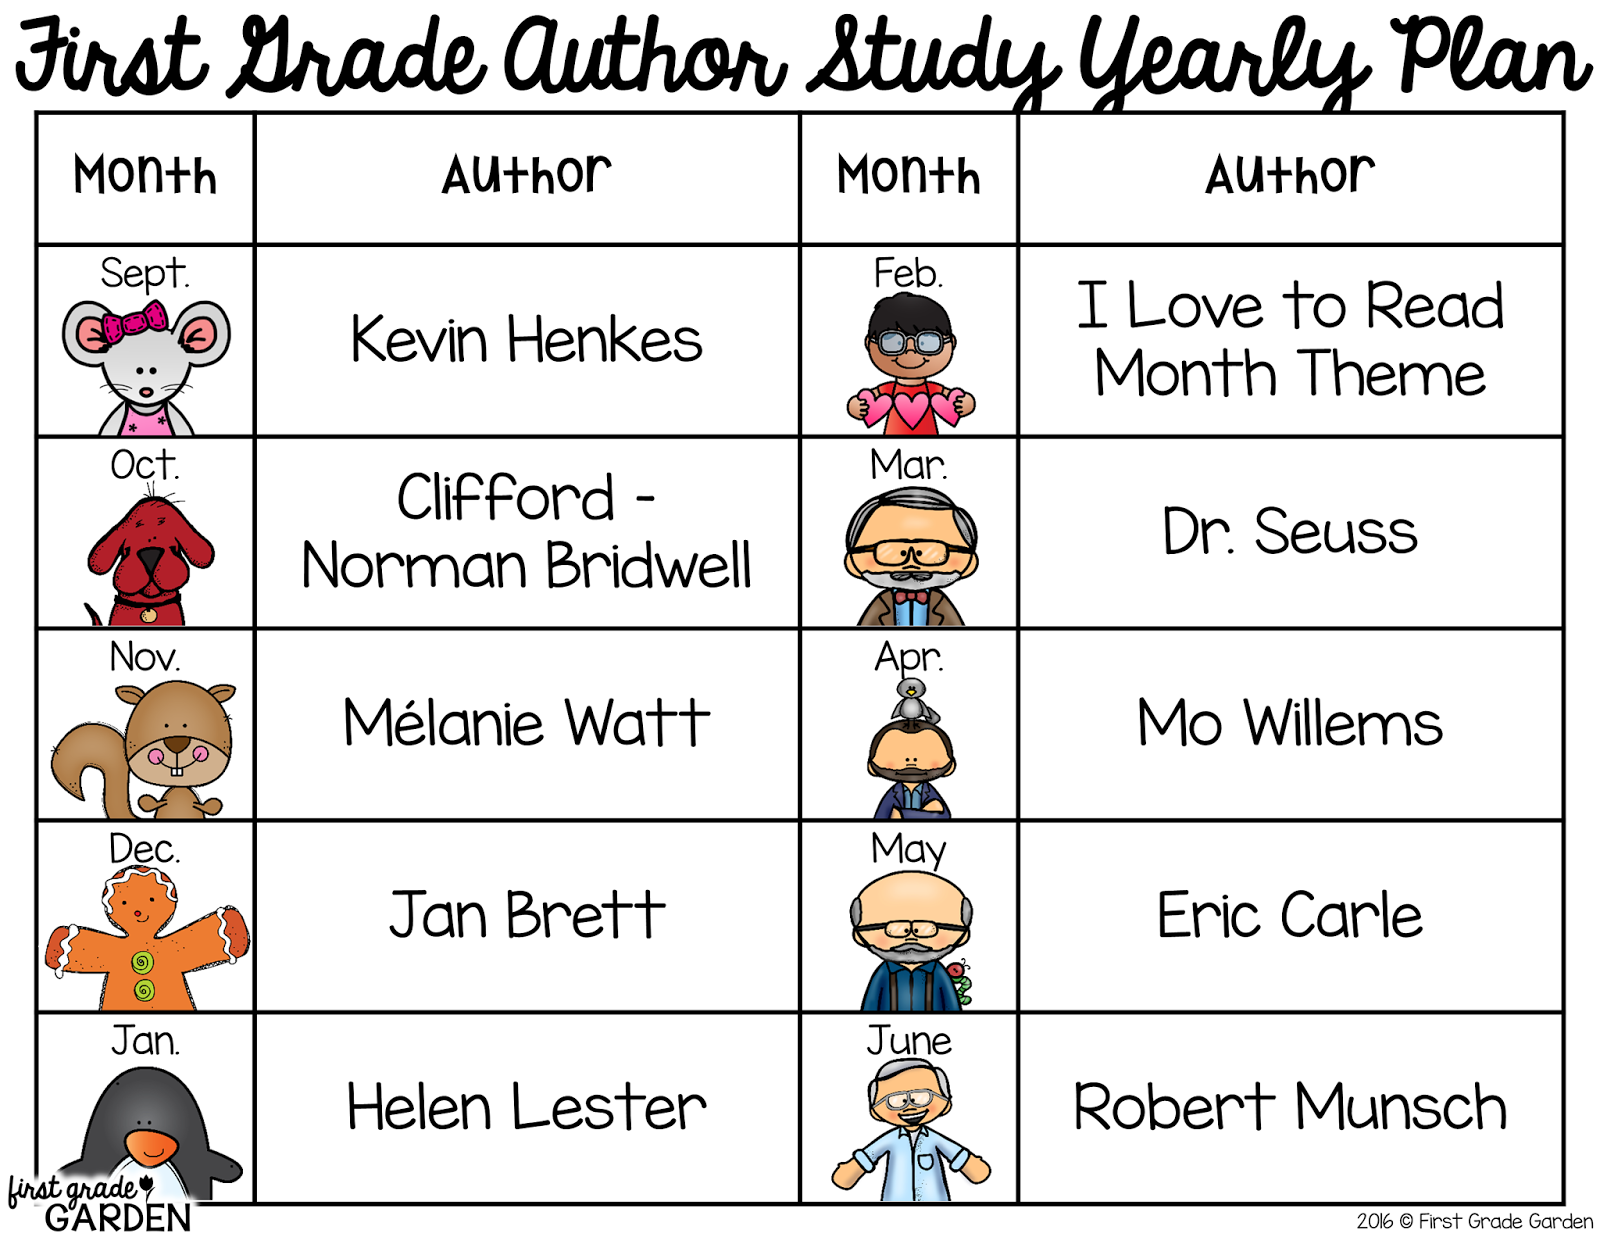 23 Best First Grade Author Studies images | Readers ...